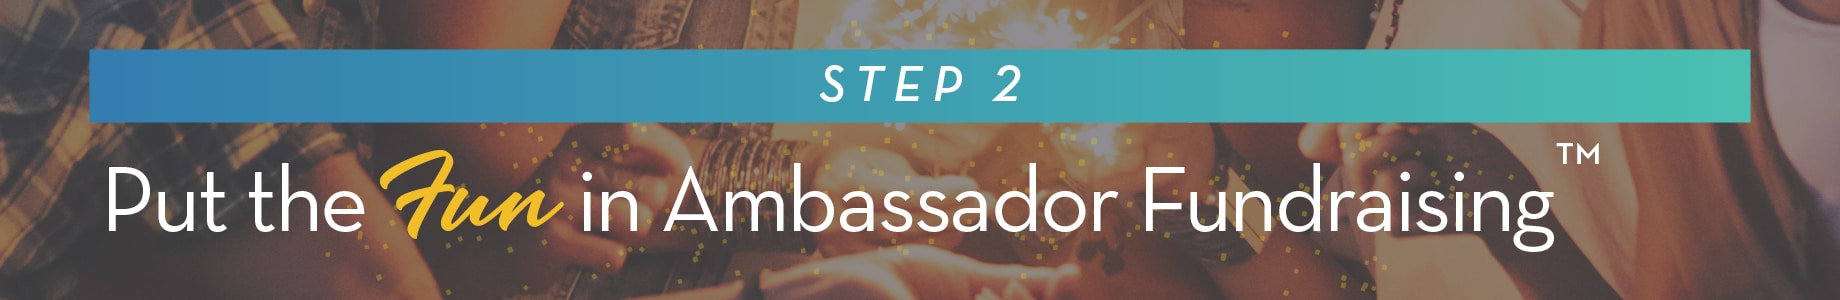 Step 2: Put the FUN in Ambassador Fundraising